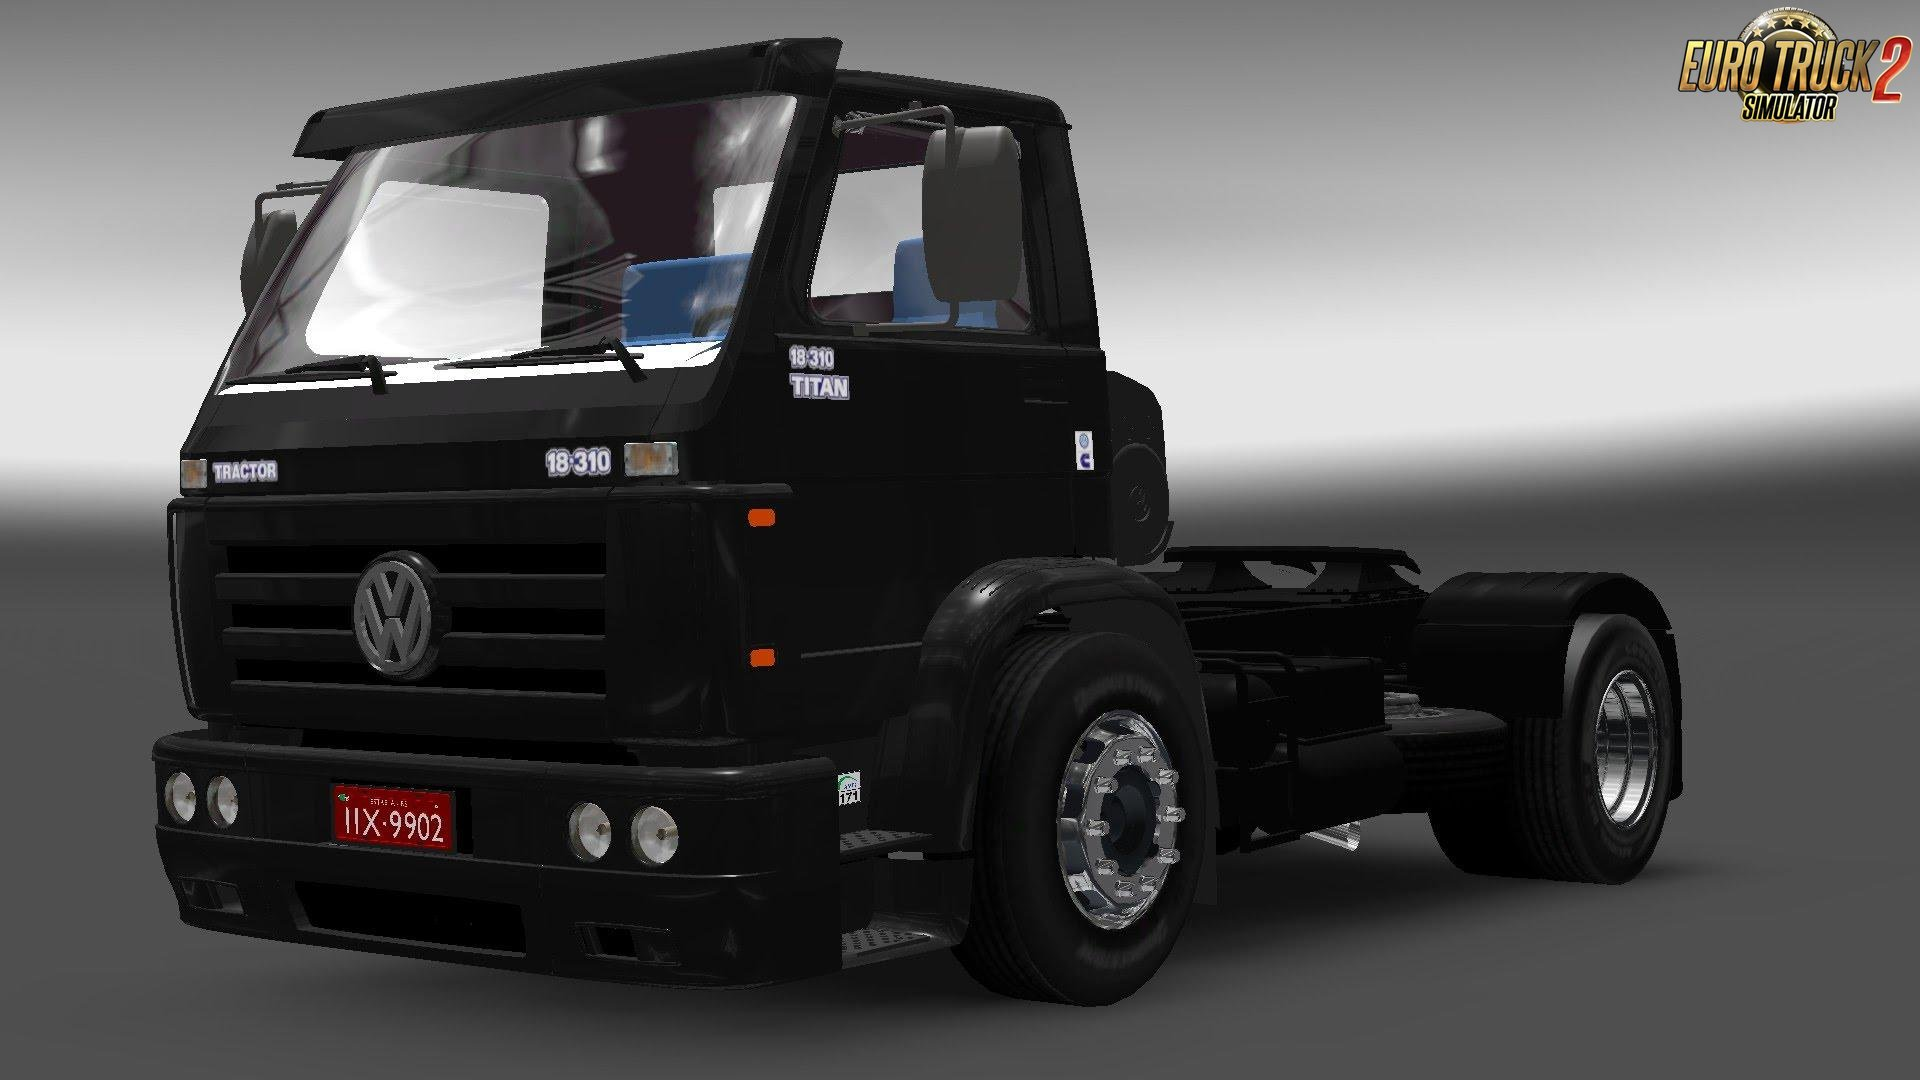 Volkswagen Titan 18.310 for Ets2